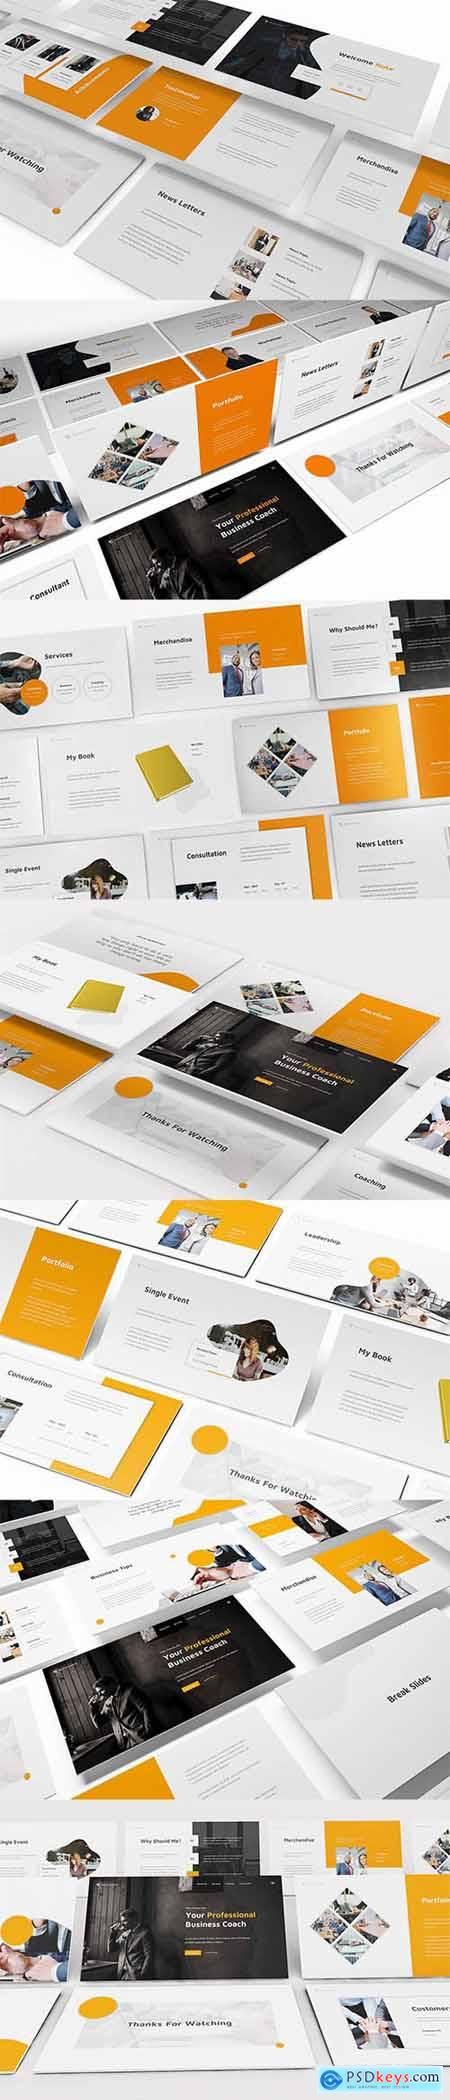 Business Coach Powerpoint, Keynote and Google Slide Template